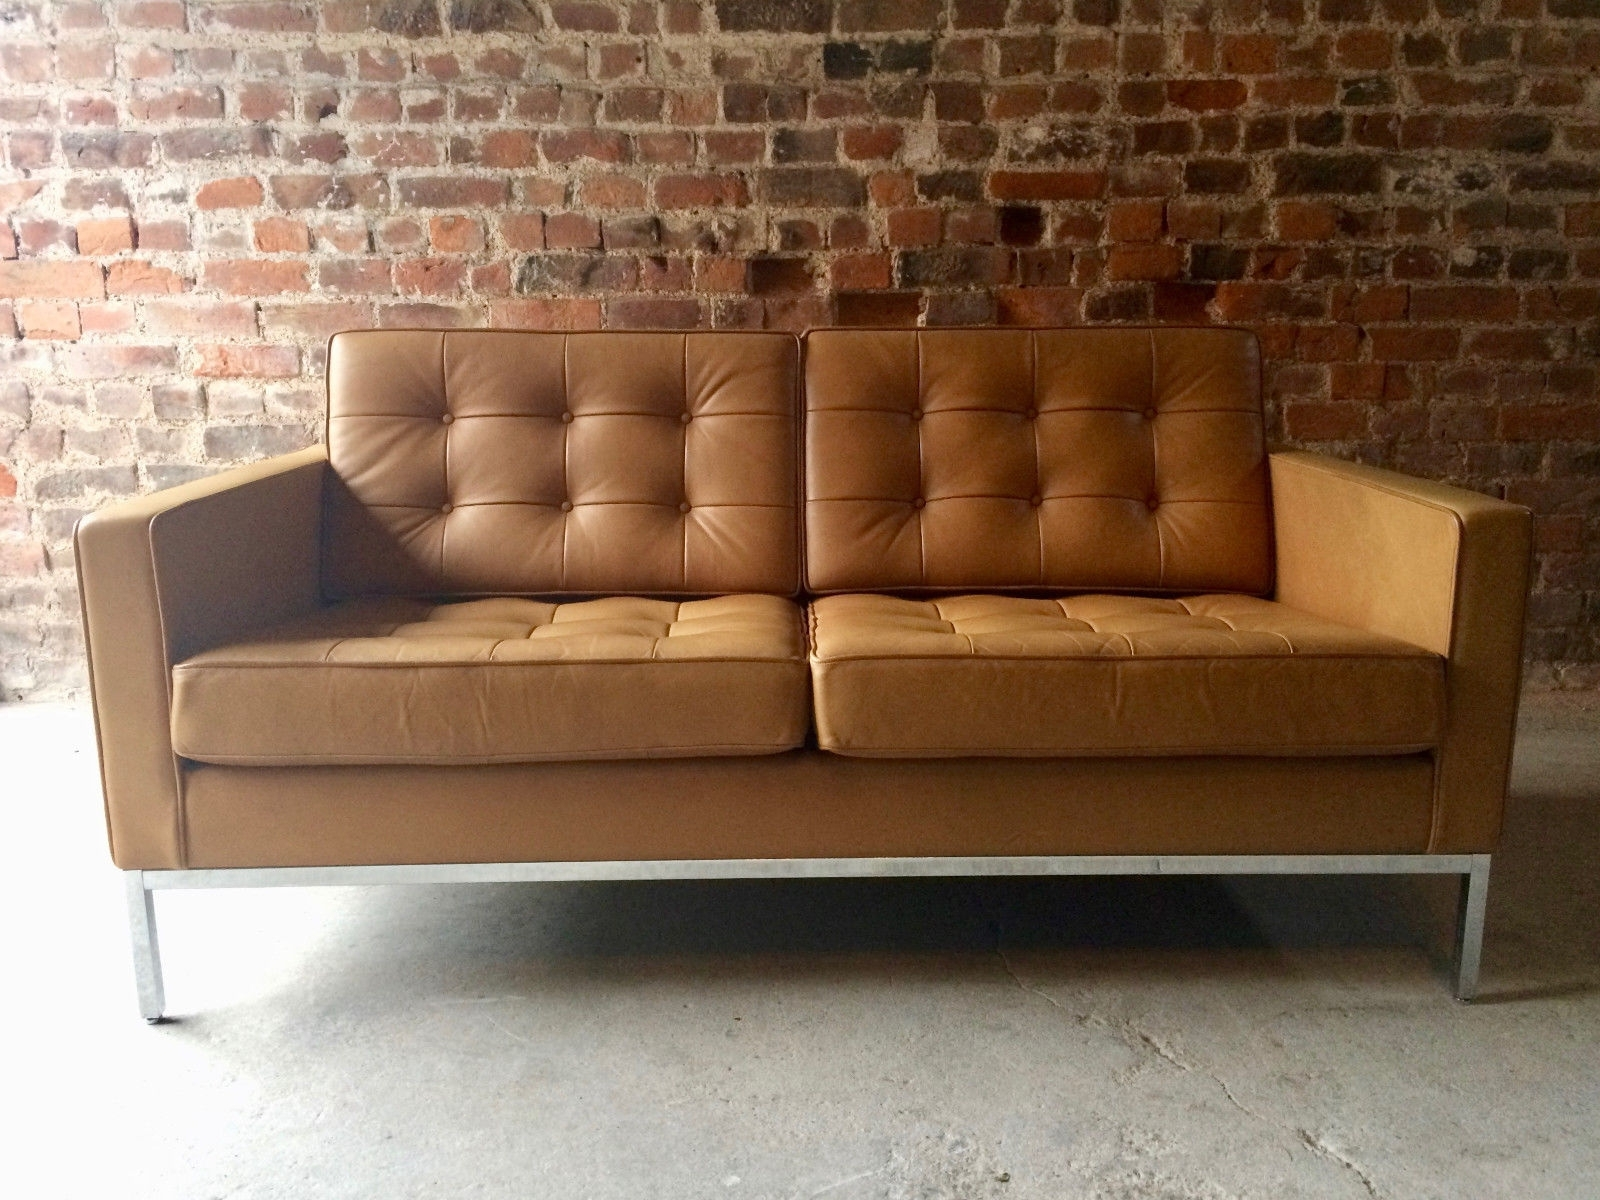 Vintage 2 Seater Leather Sofaflorence Knoll For Knoll For Sale With Most Recent Florence Sofas And Loveseats (View 13 of 15)